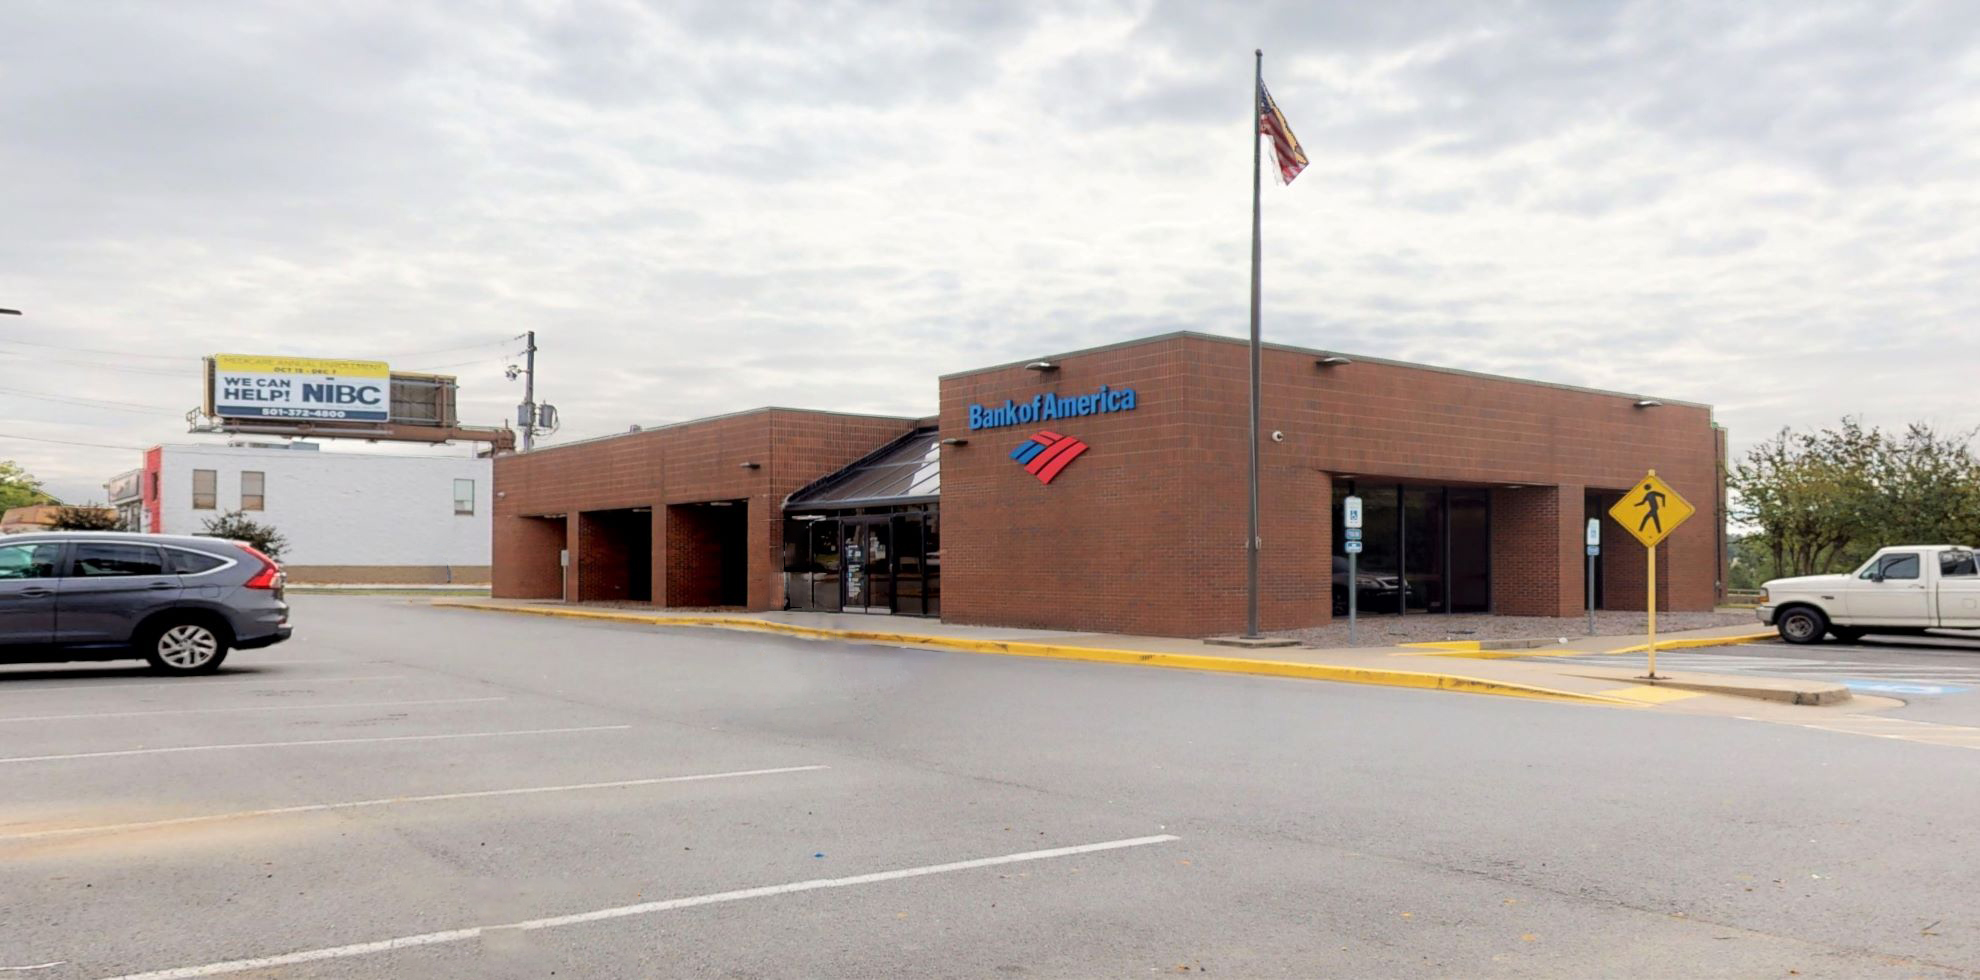 Bank of America financial center with drive-thru ATM | 2421 McCain Blvd, North Little Rock, AR 72116